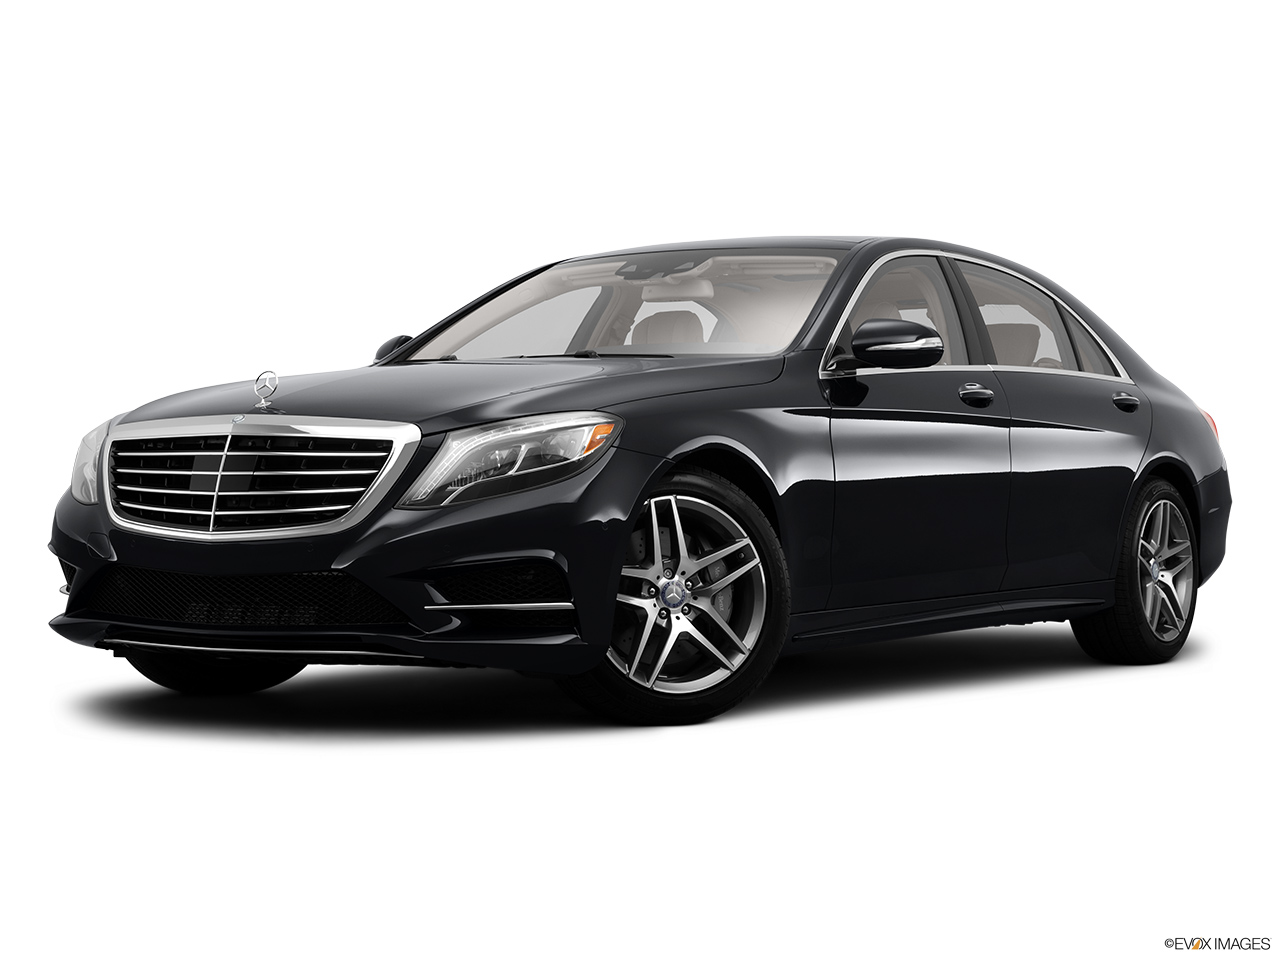 2014 Mercedes Benz S Class Sedan S63 Amg Rwd Front Angle